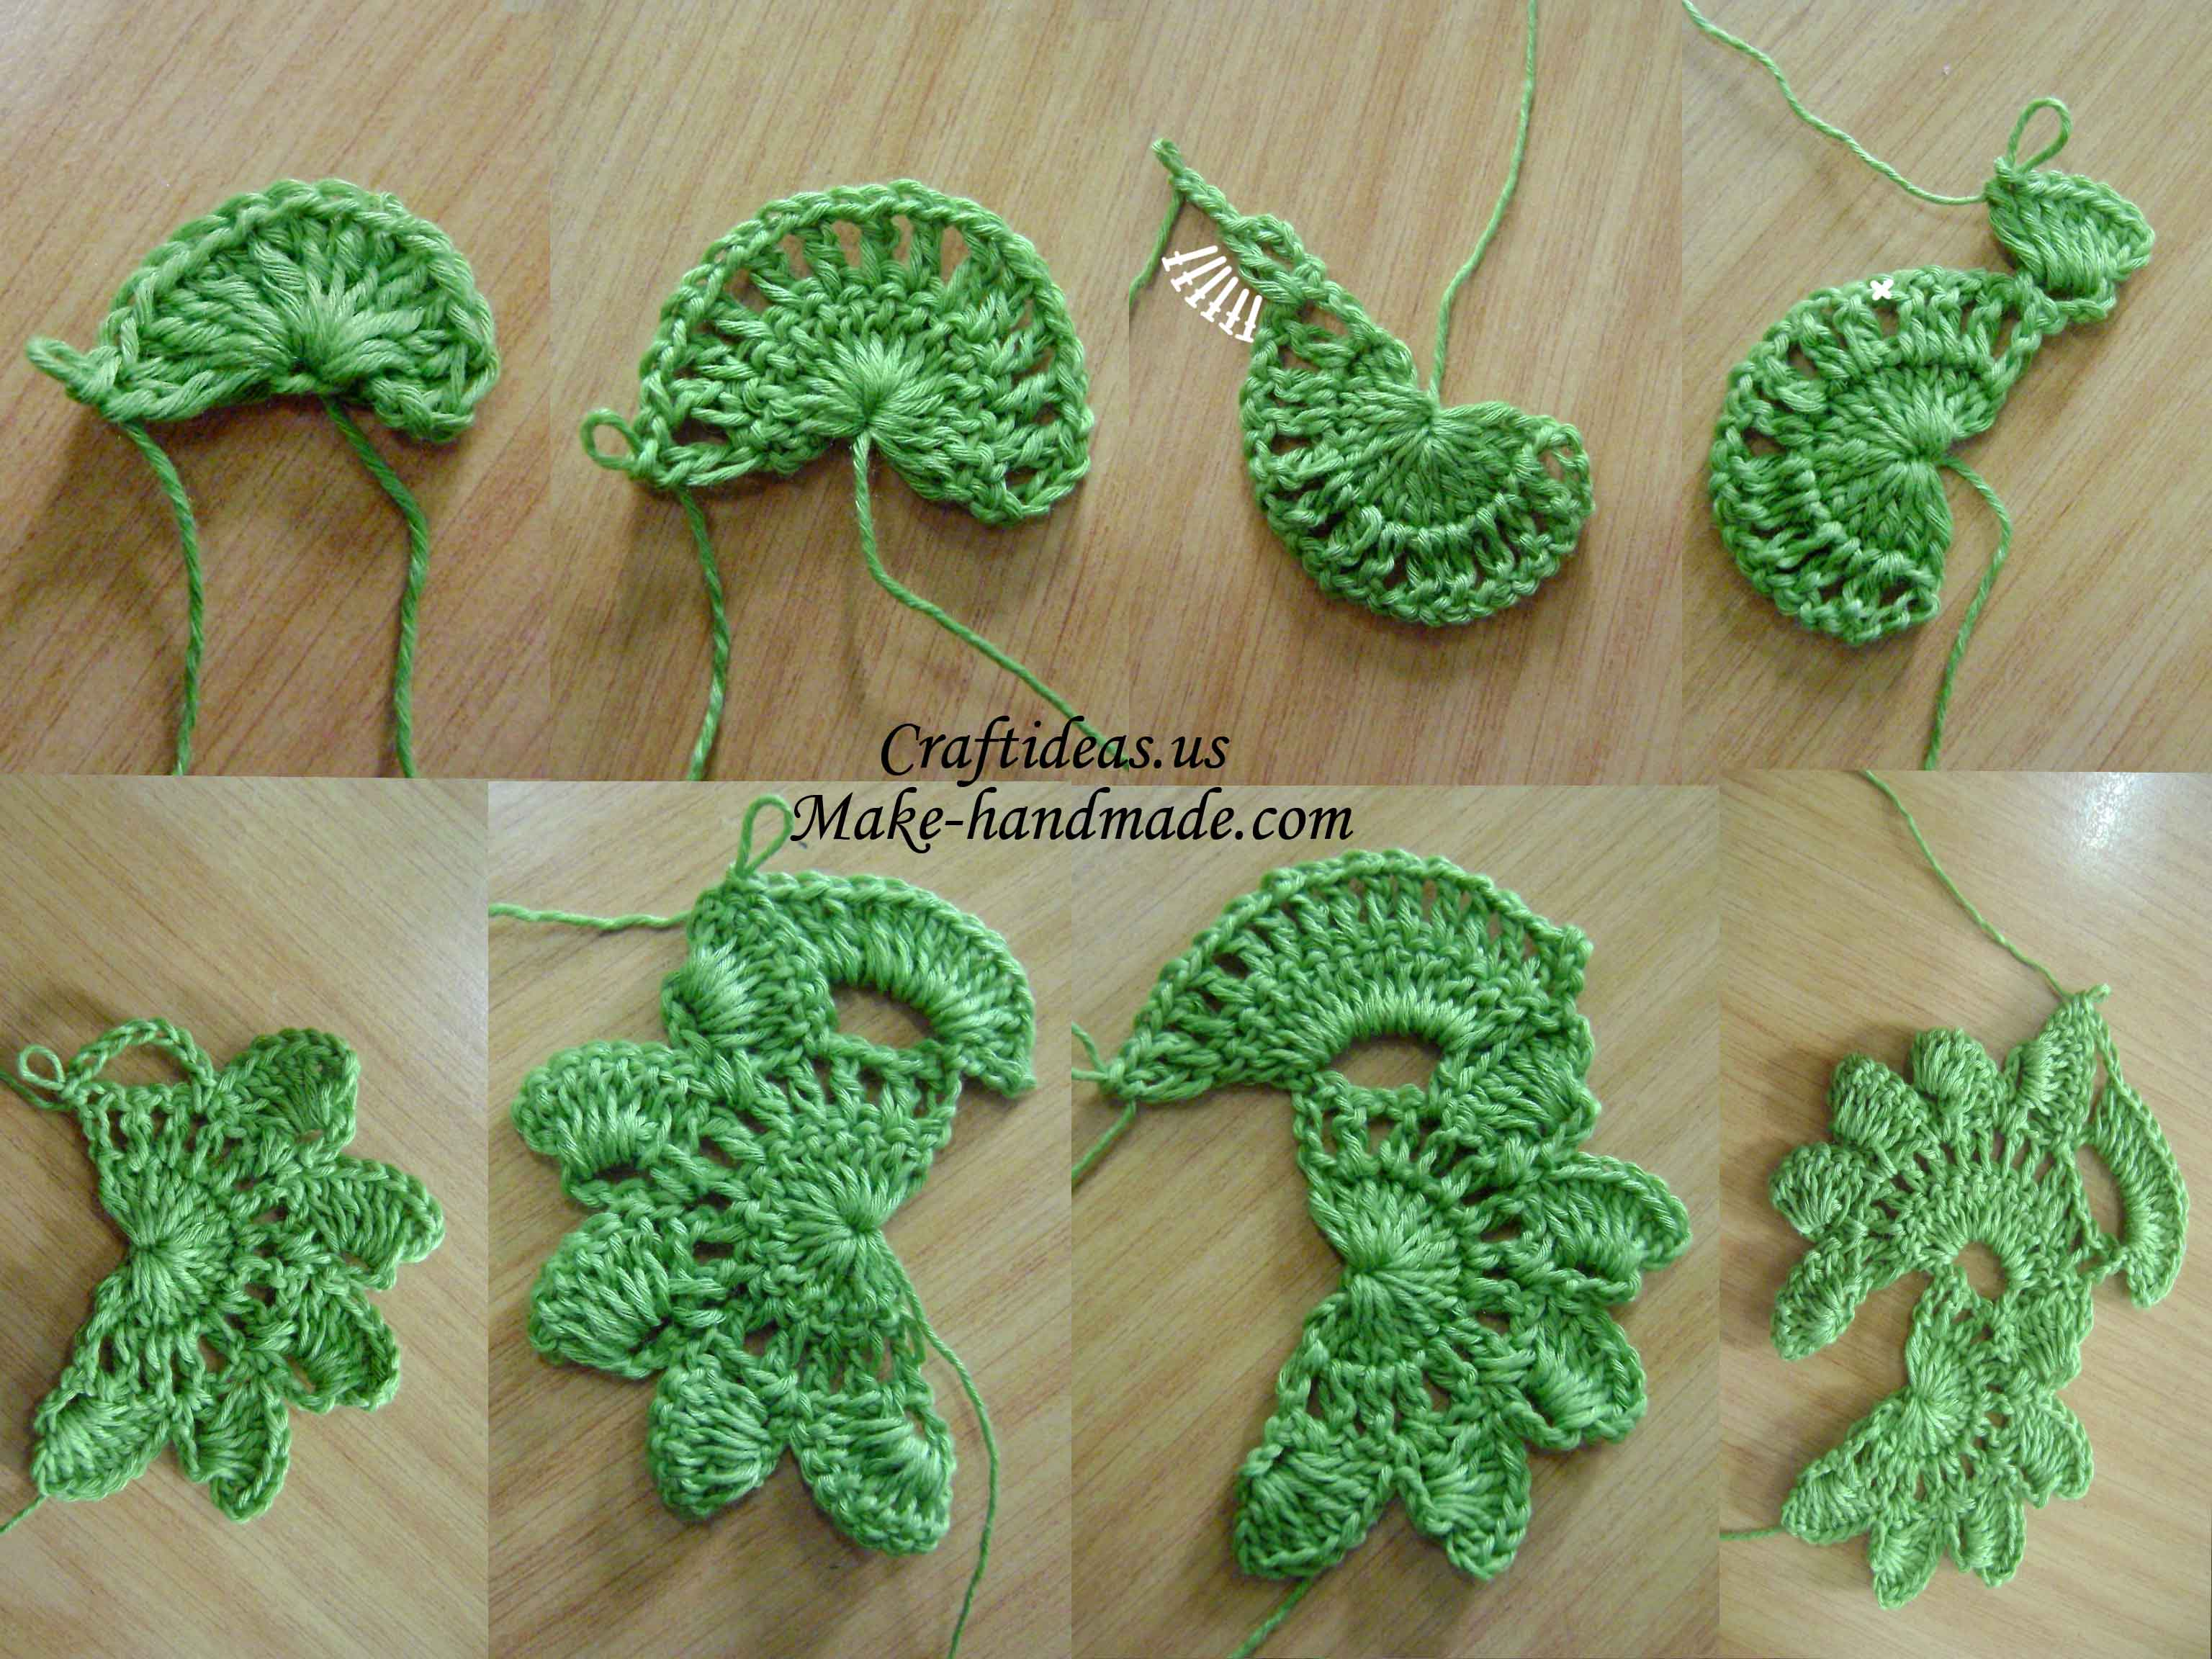 Crochet Patterns Tutorial : ... crochet flowers tutorial leave a reply crochet tulip flower tutorial